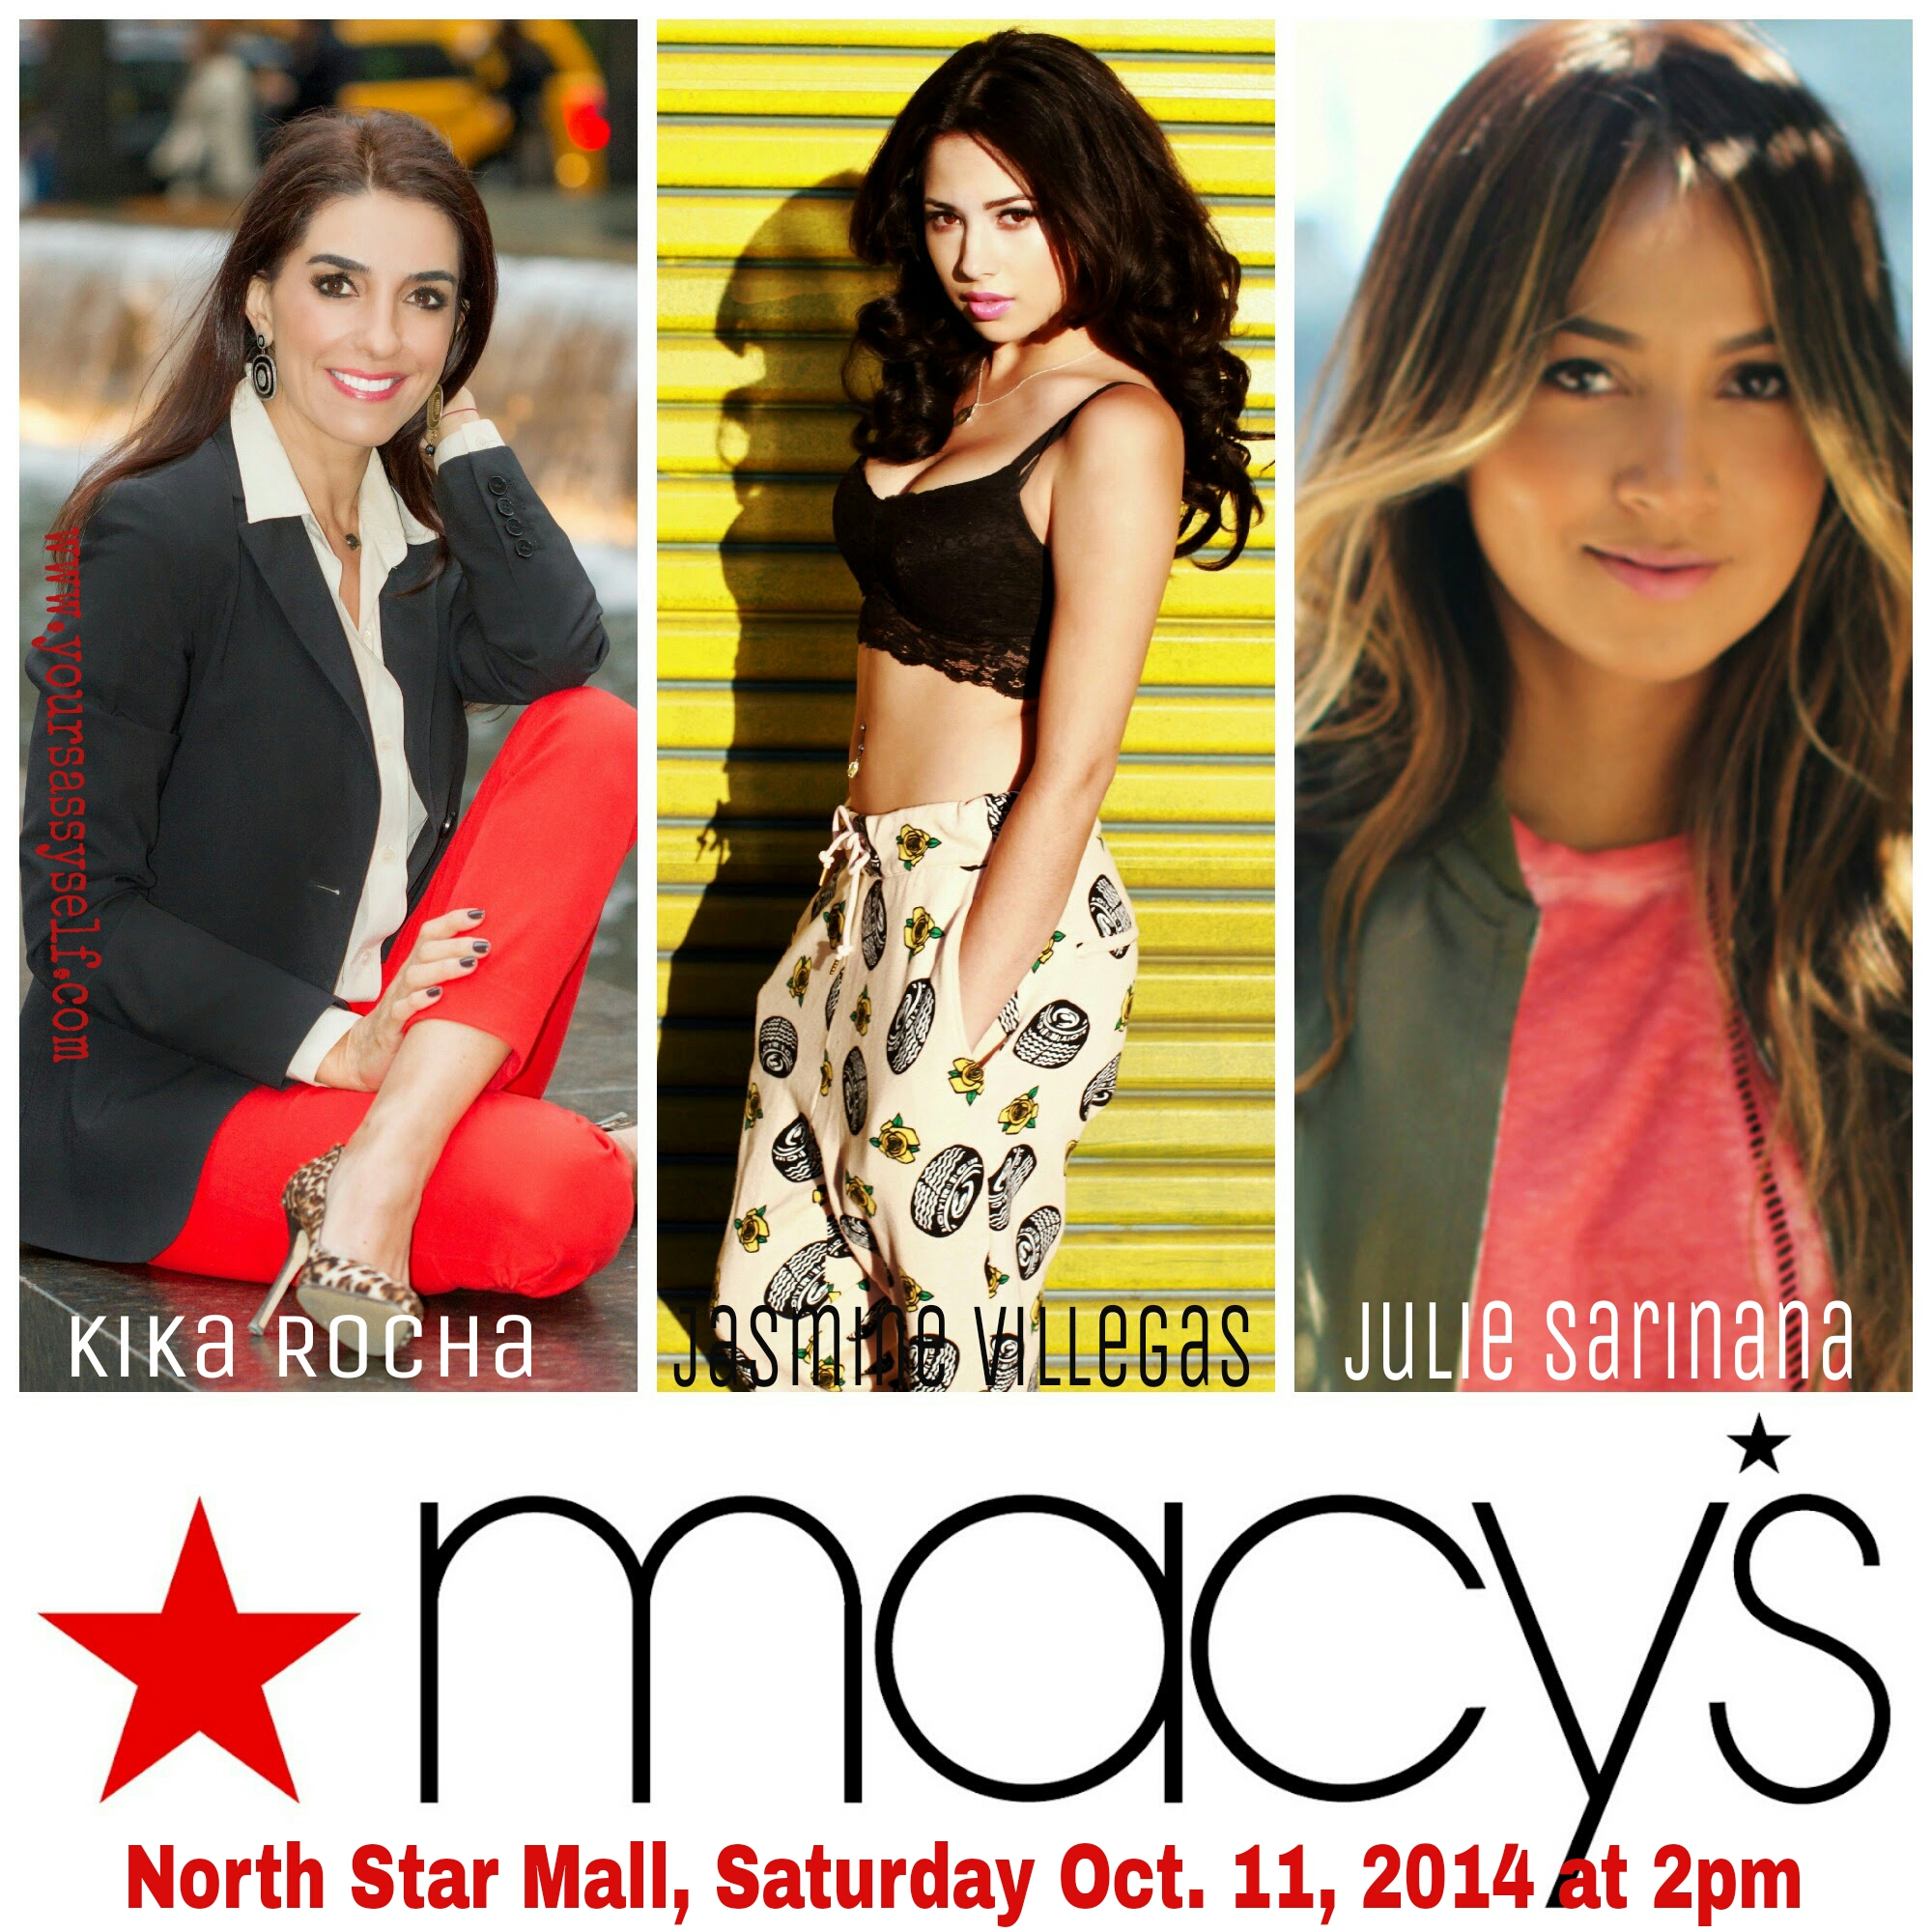 San Antonio, Celebrate Hispanic Heritage Month with Macy's, Kika Rocha, Jasmine V & Sincerely Jules!